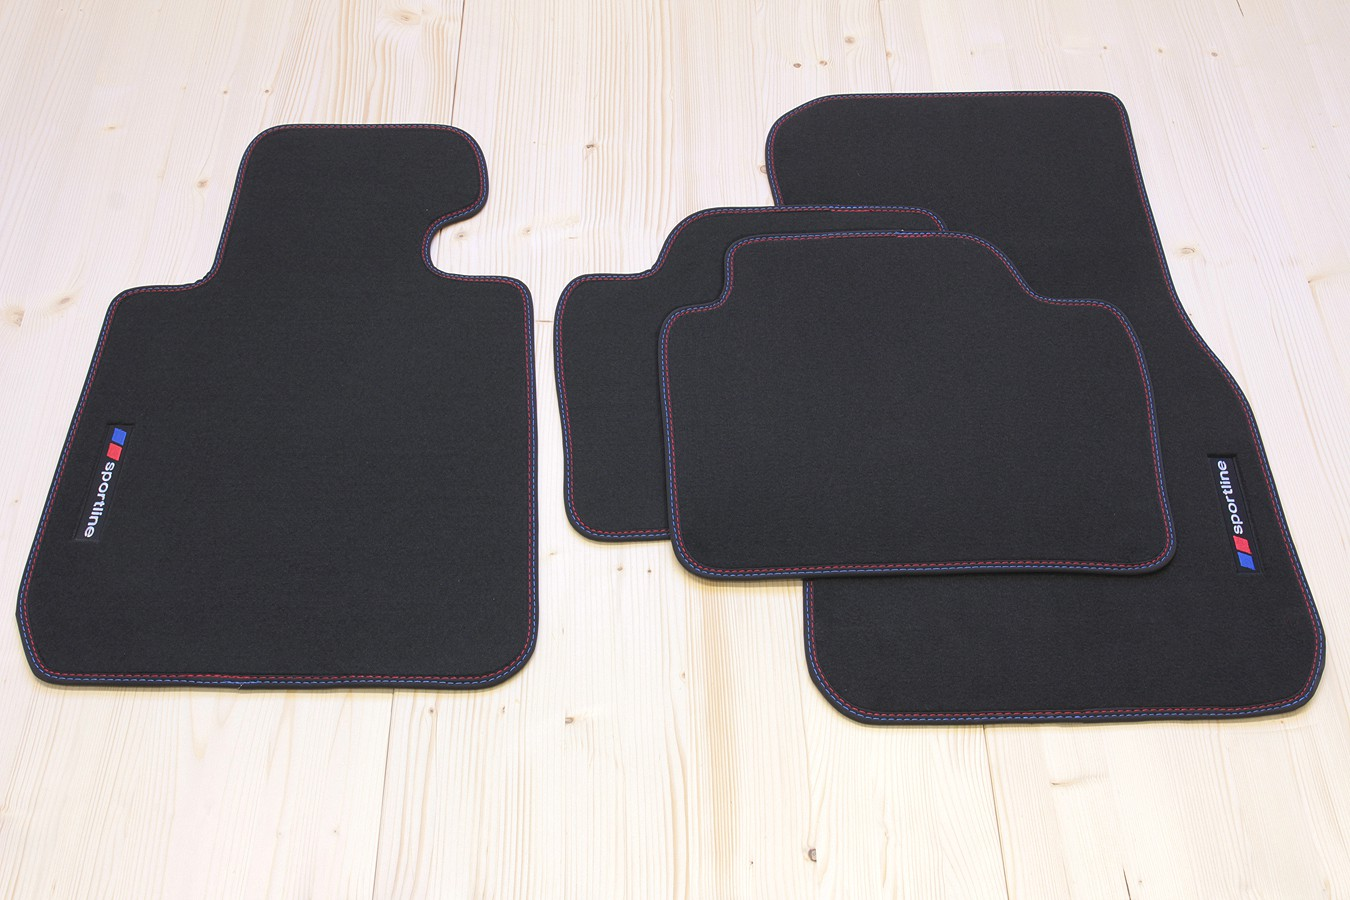 sportline tapis de sol pour bmw s rie 3 f30 f31 ann e. Black Bedroom Furniture Sets. Home Design Ideas